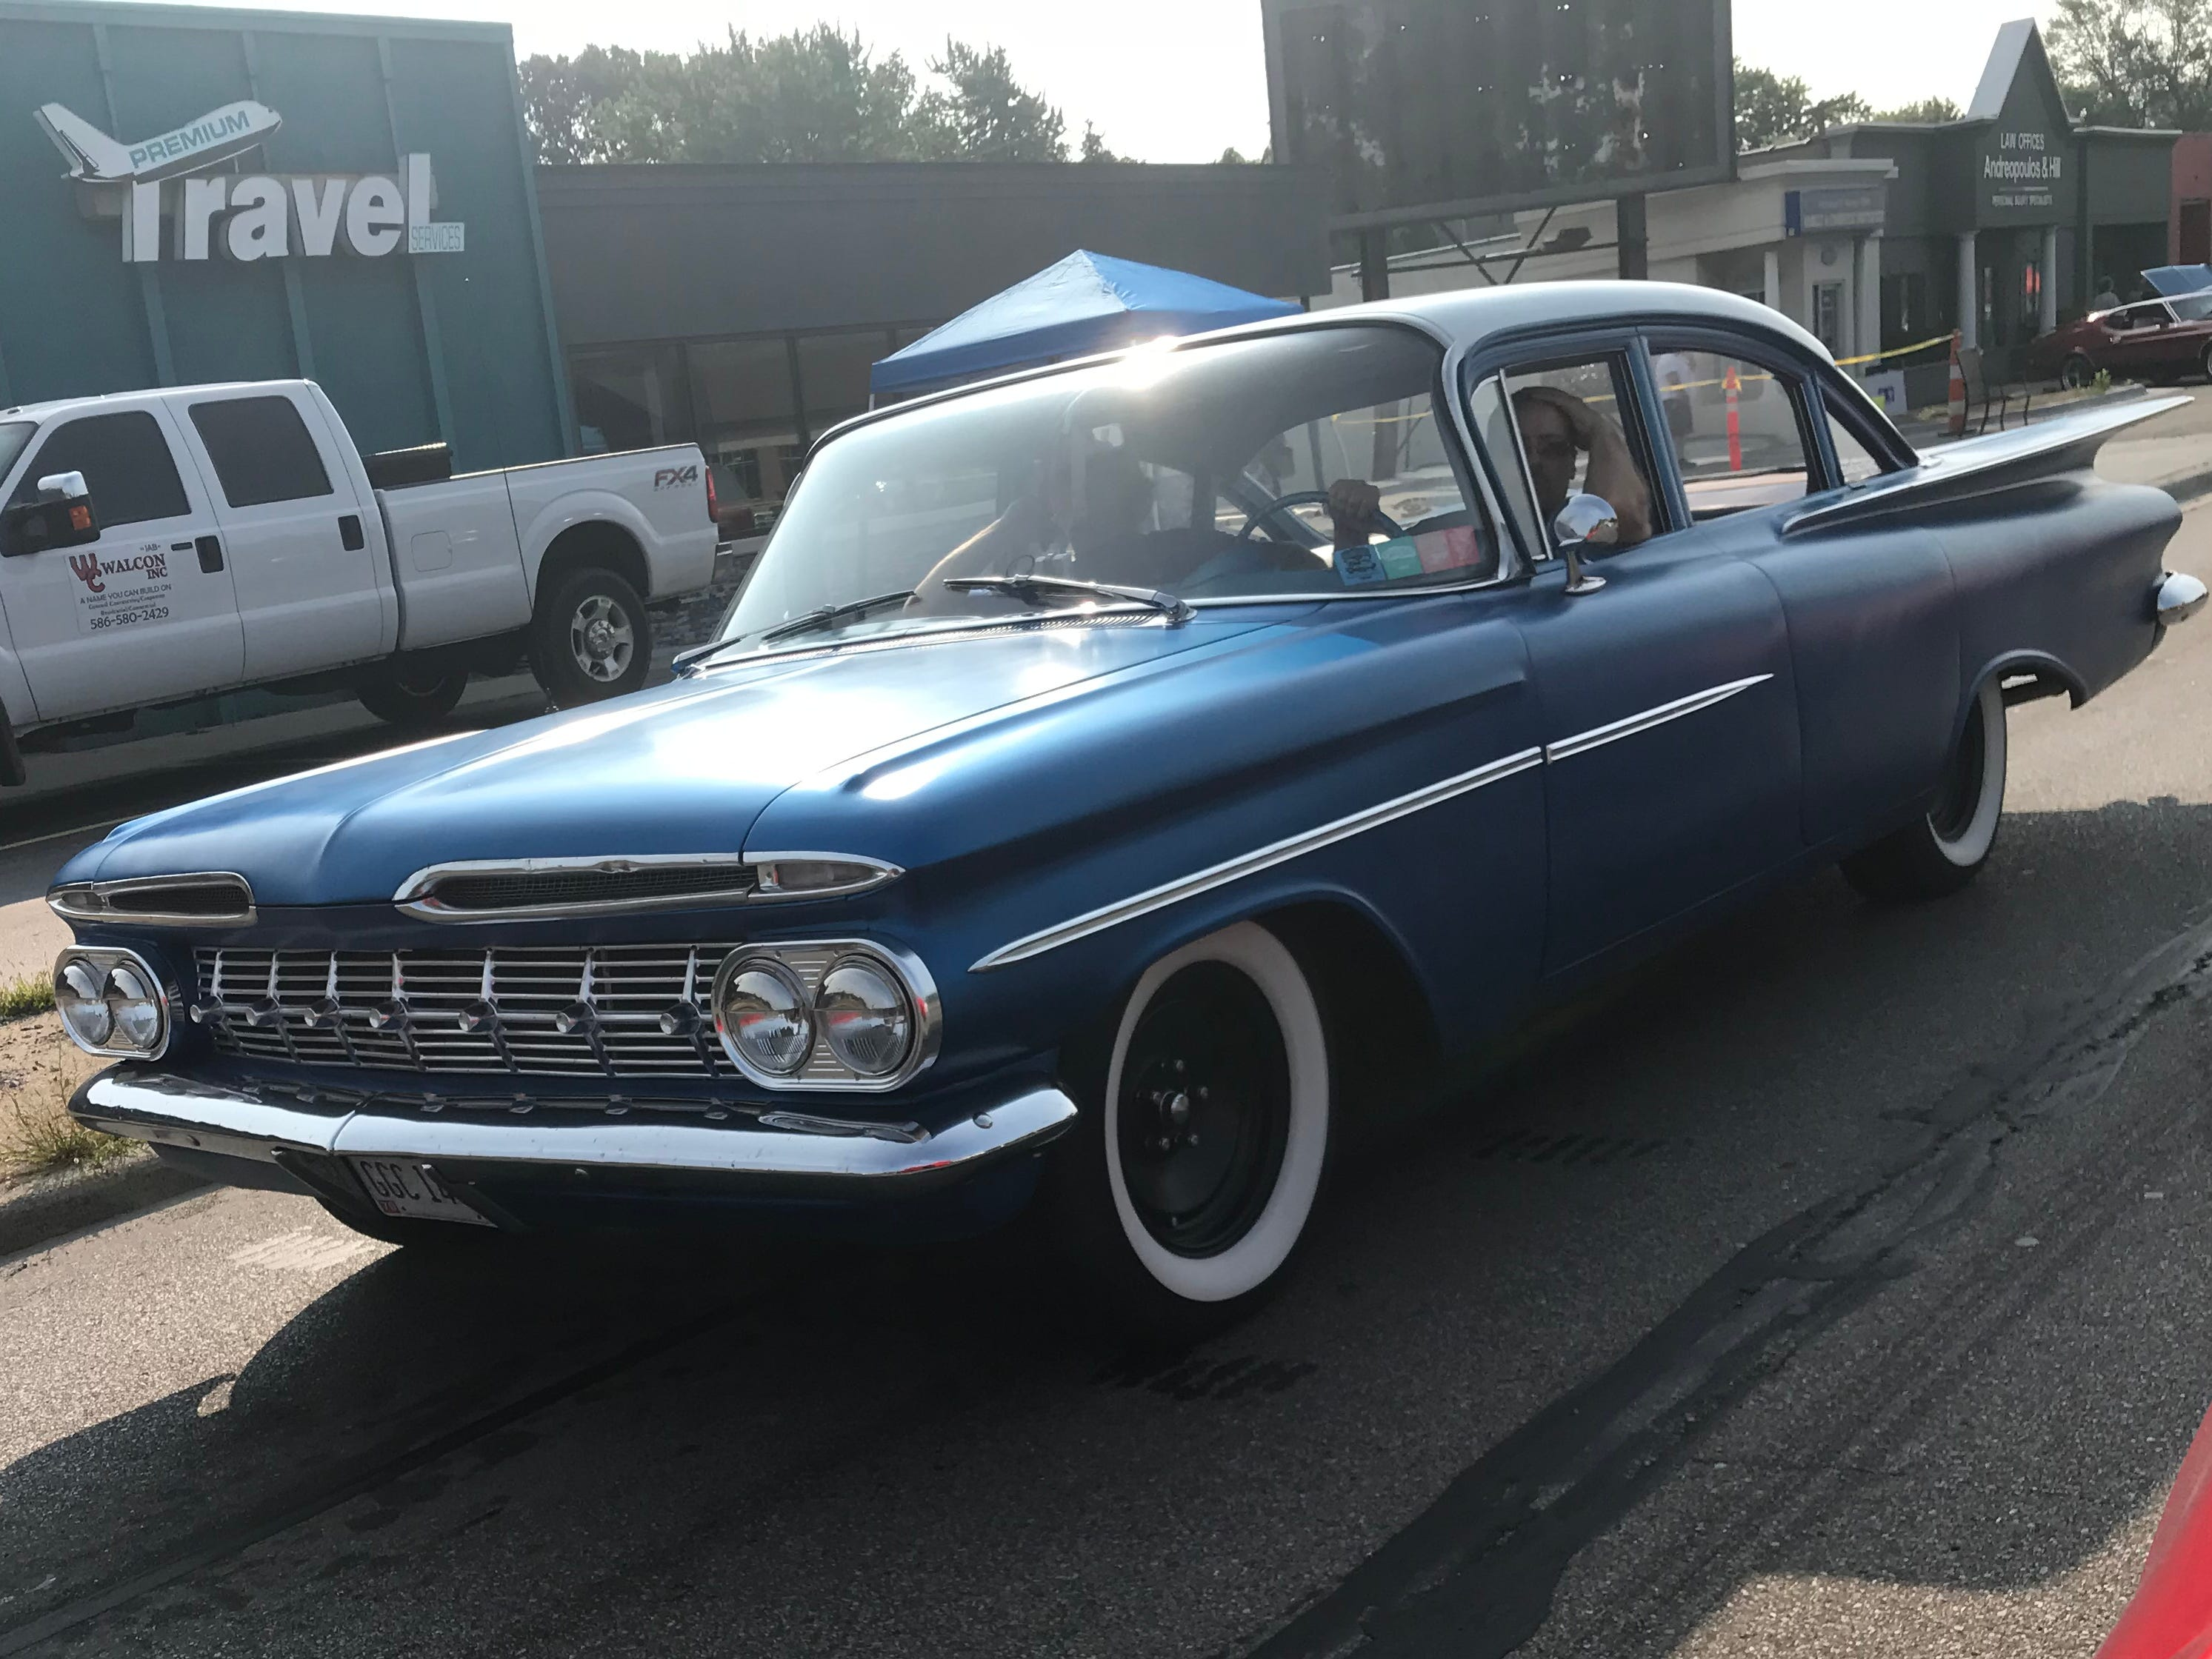 A 1950s blue Chevy Impala cruises down Woodward through Royal Oak.